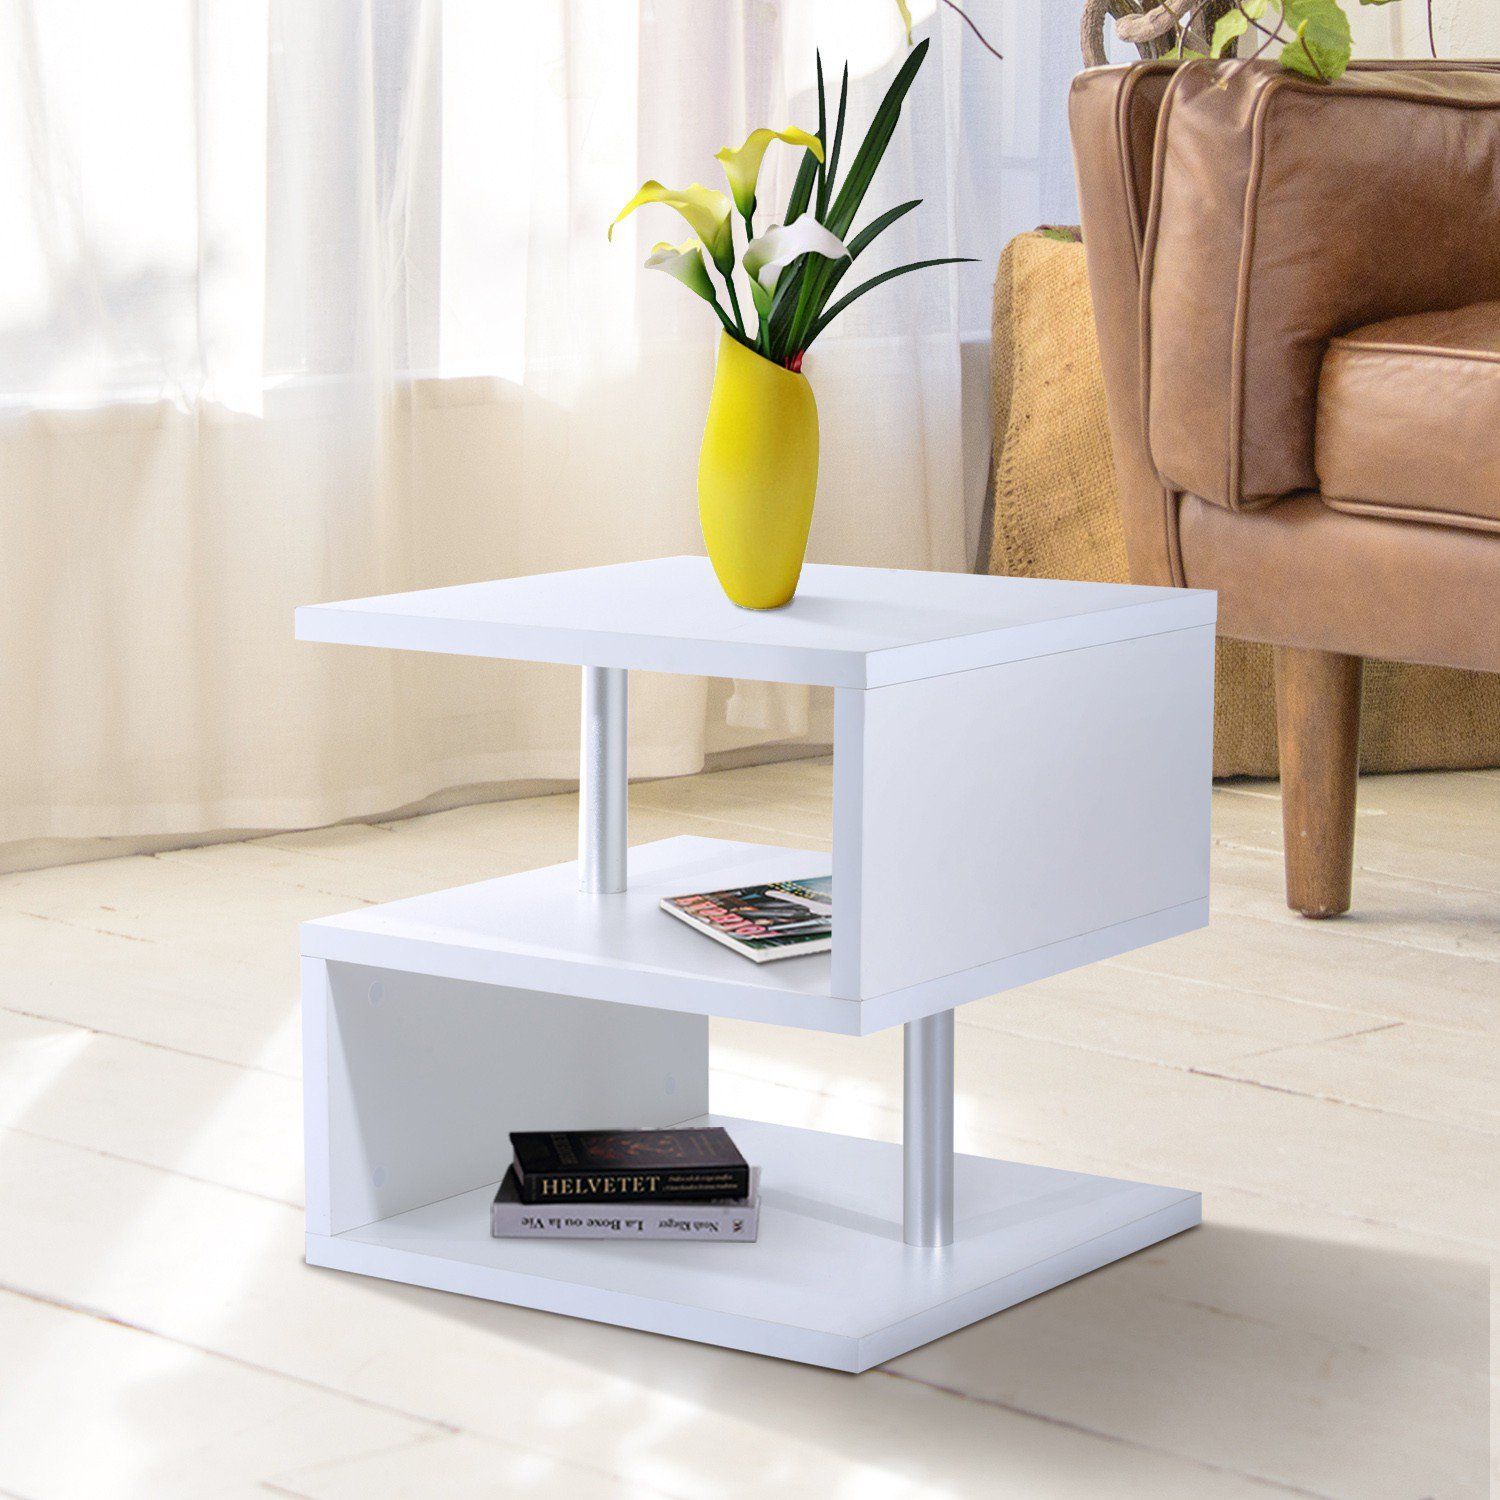 Homcom Wooden S Shape End Table 3 Tier Storage Shelves Organizer Living Room Side Table Desk White Table Furniture Home Decor